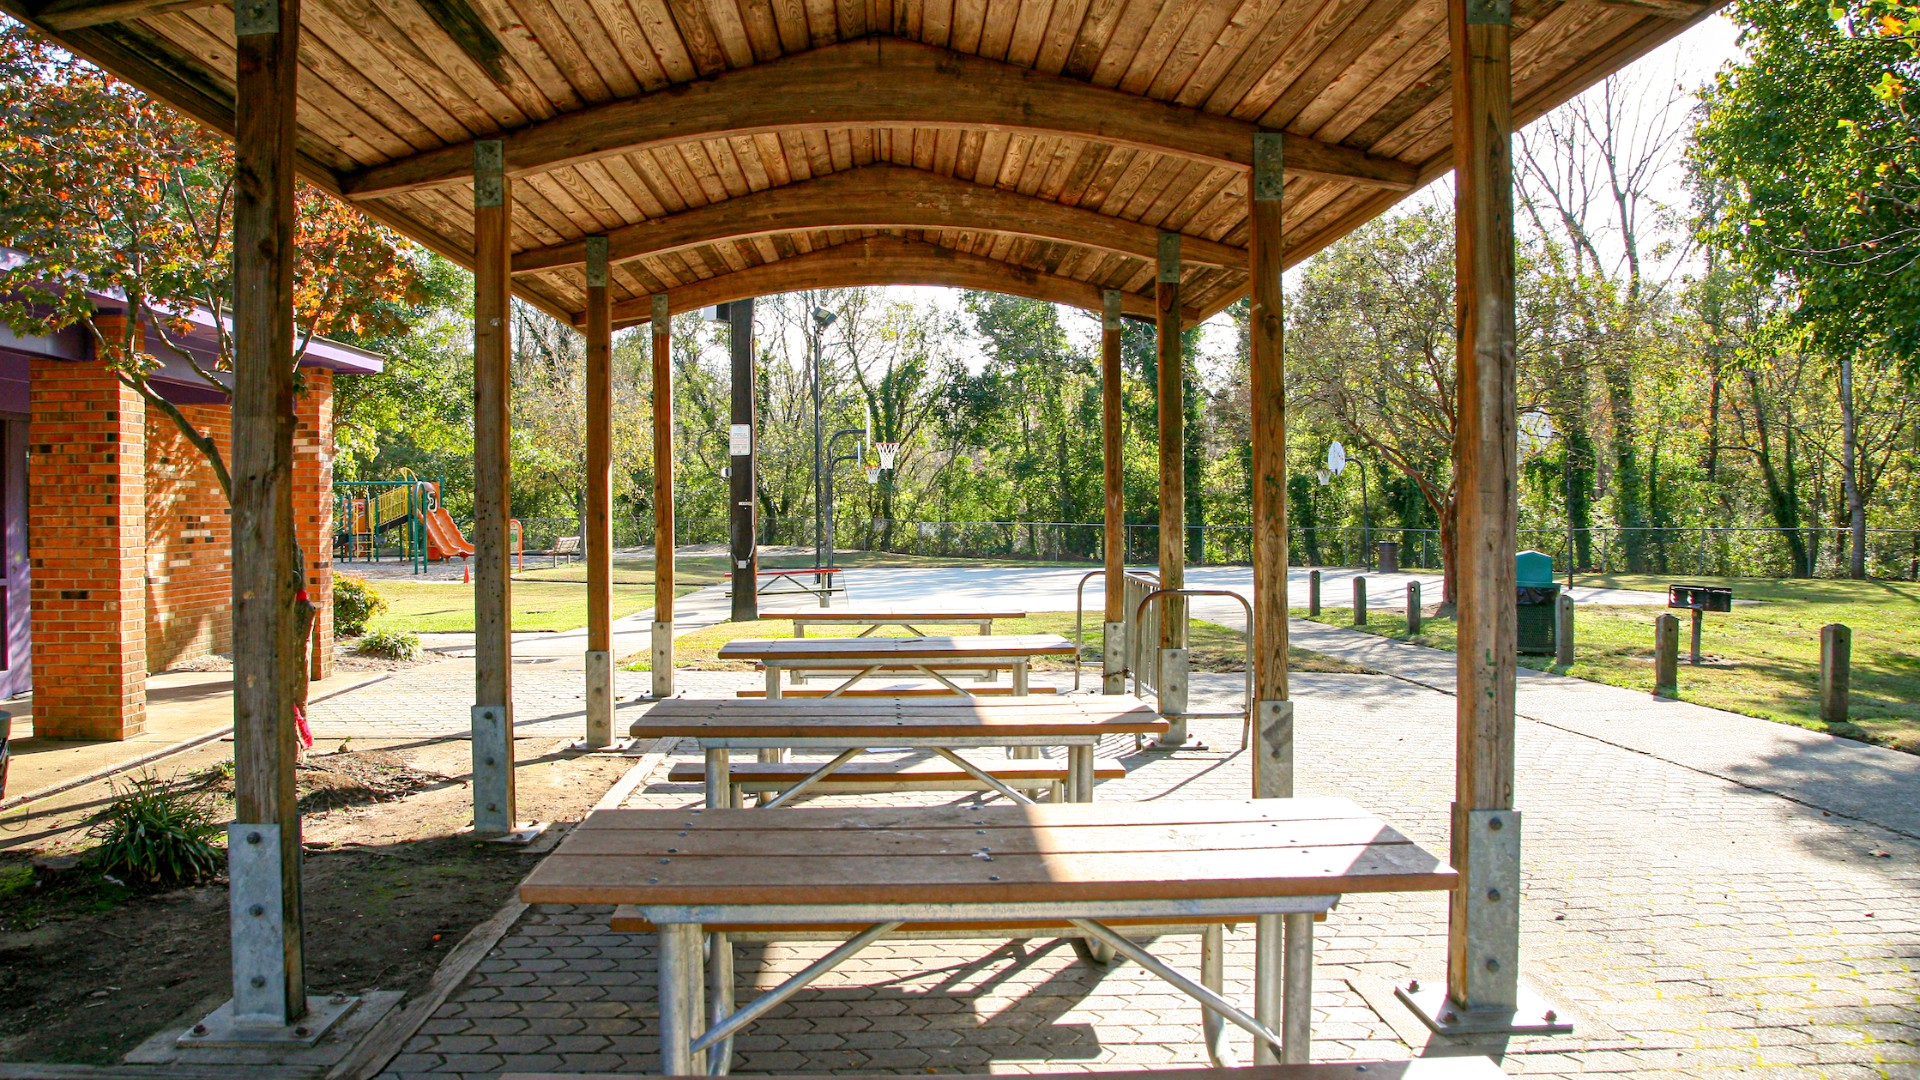 Wooden picnic shelter with view of basketball courts in the background at Apollo Heights Park